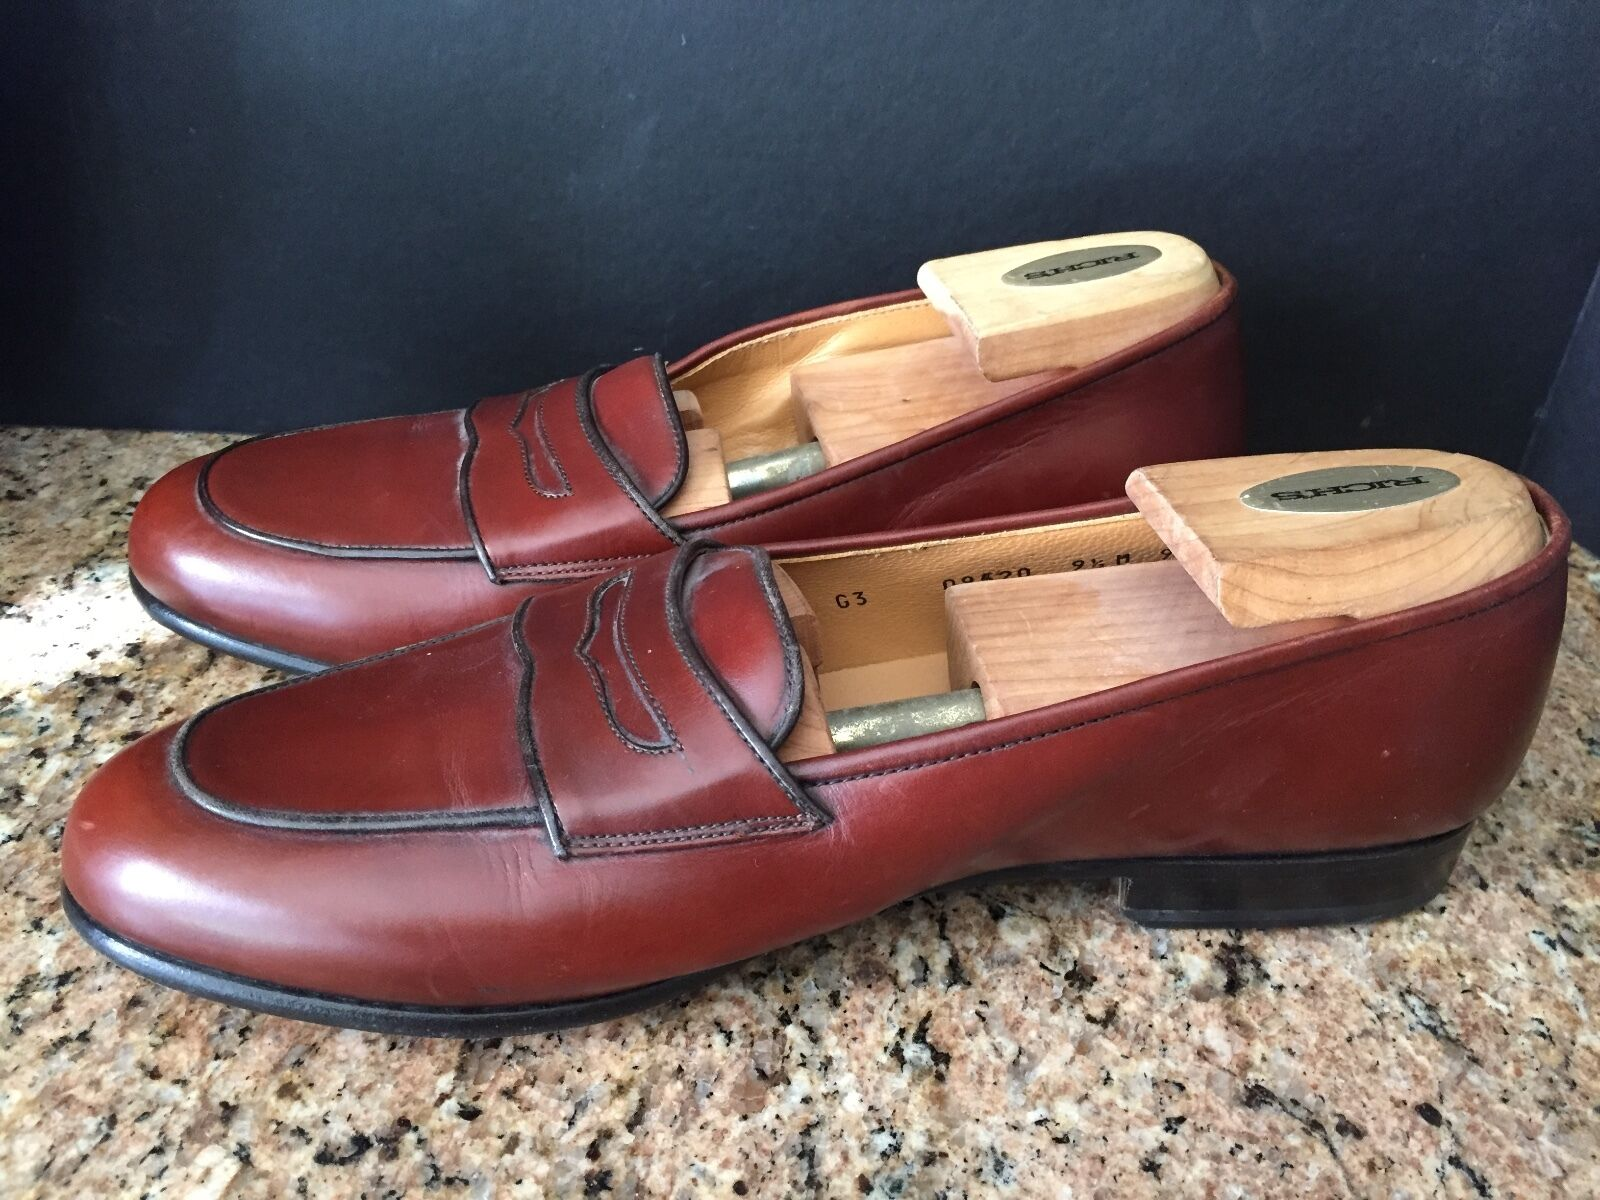 COLE HAAN ITALY LEATHER SLIP ON DRESS PENNY LOAFERS SADDLE BROWN  COLOR SIZE 9.5